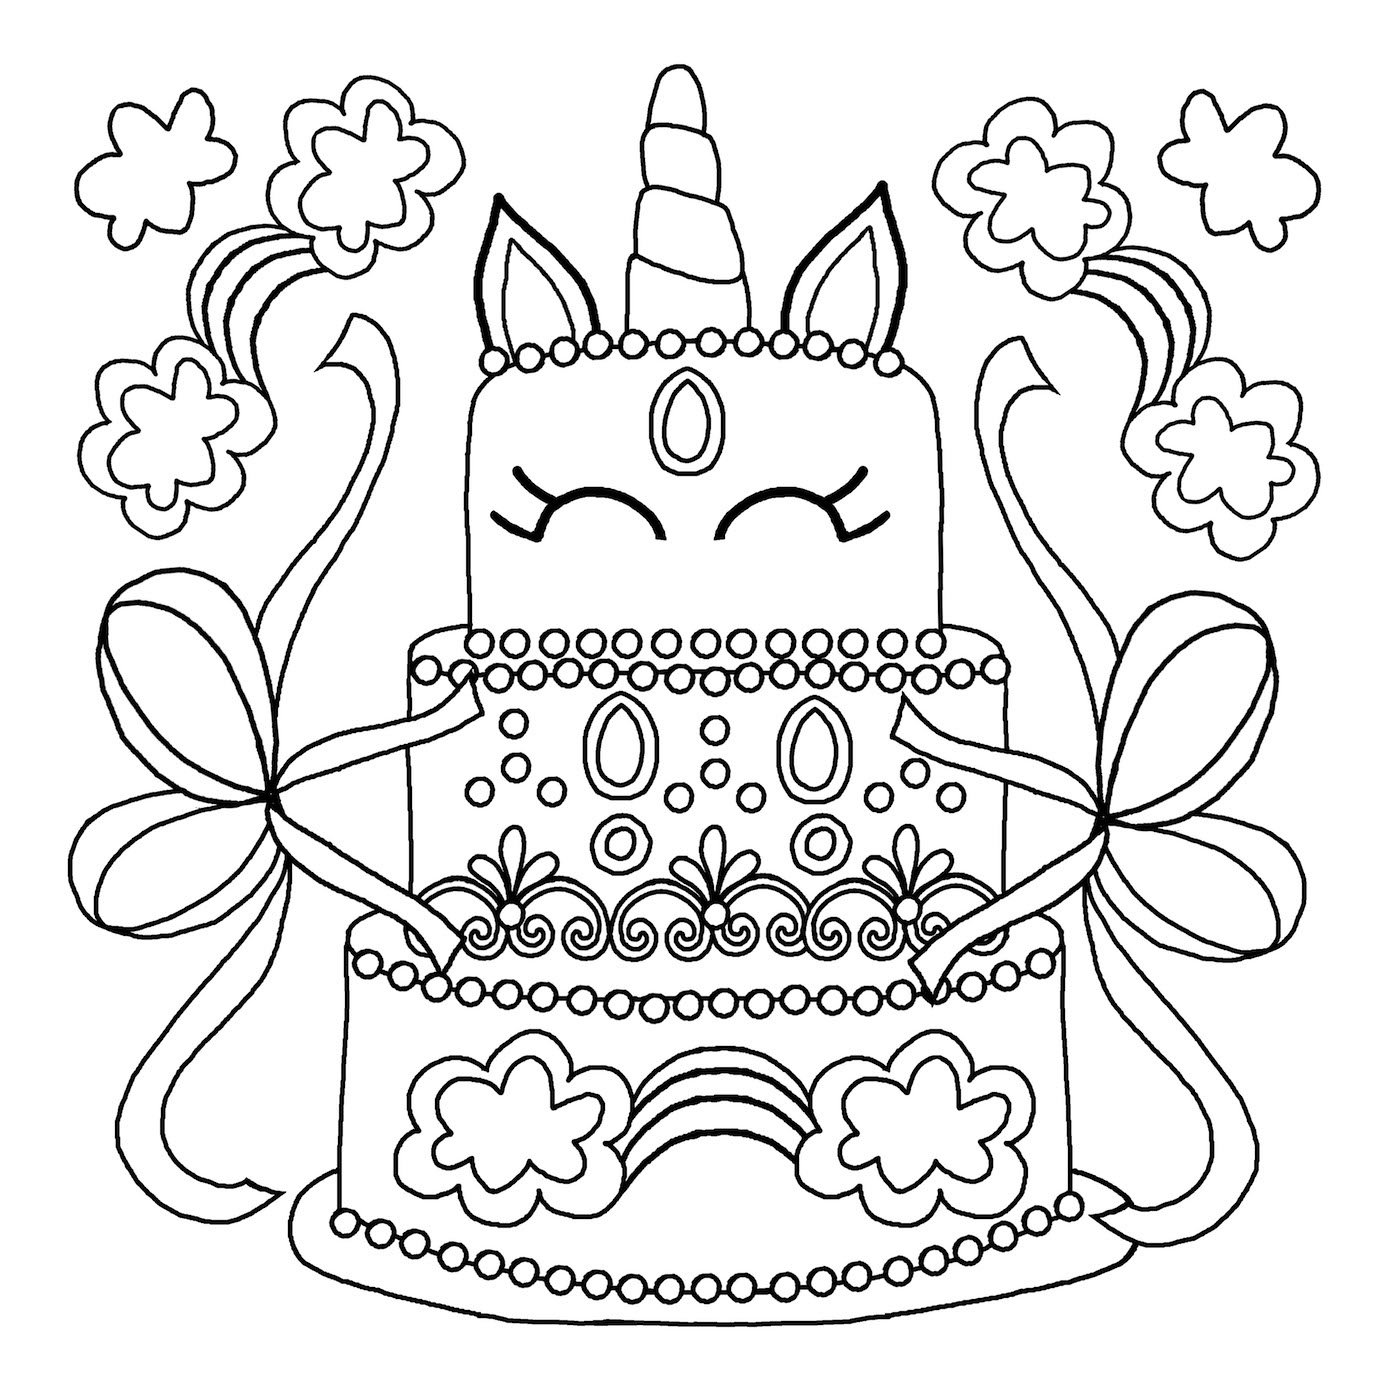 Unicorn Colouring Book Pages 3